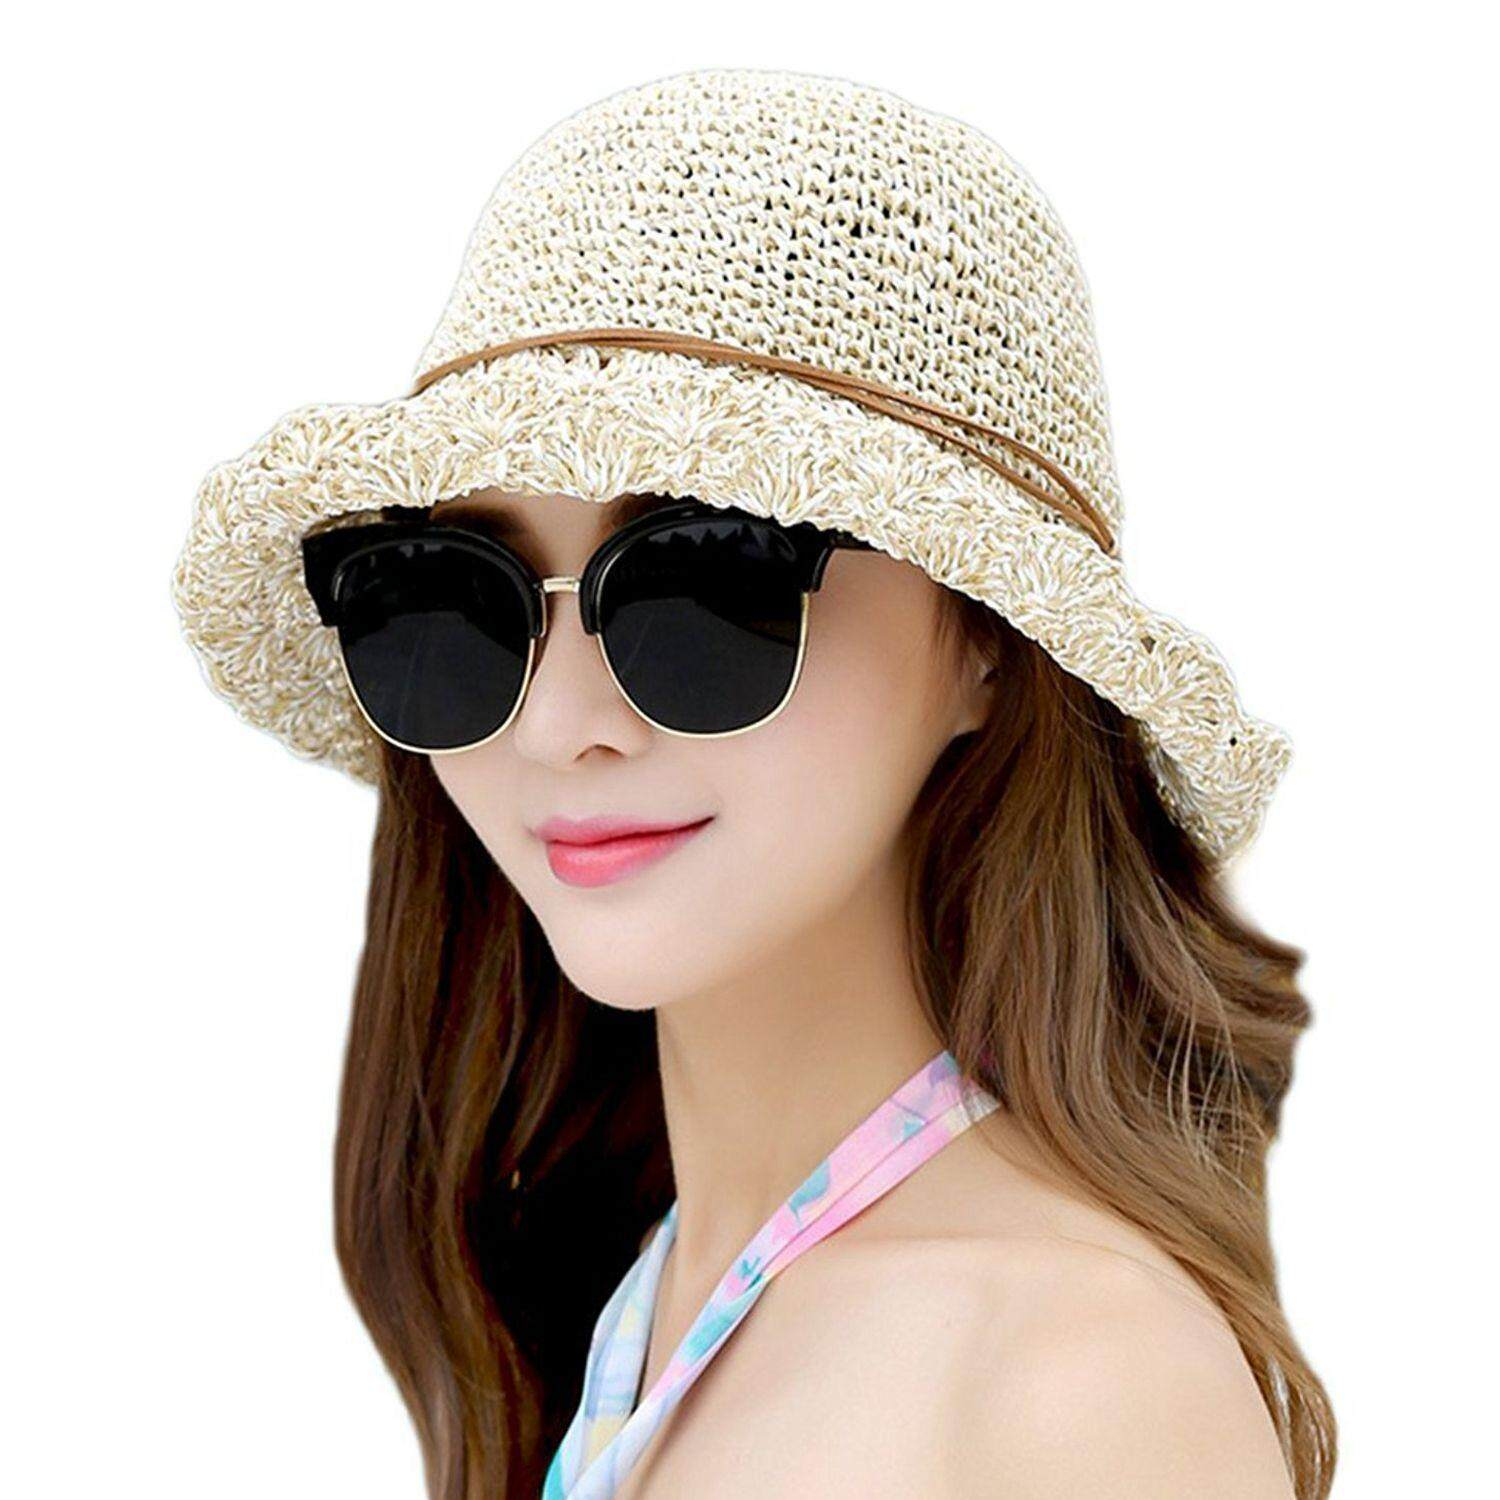 Sun Hat Bucket Girls Lady Beach Straw Hat Summer Sun Protection Packable  Foldable Cap Bow- 463c219035c6